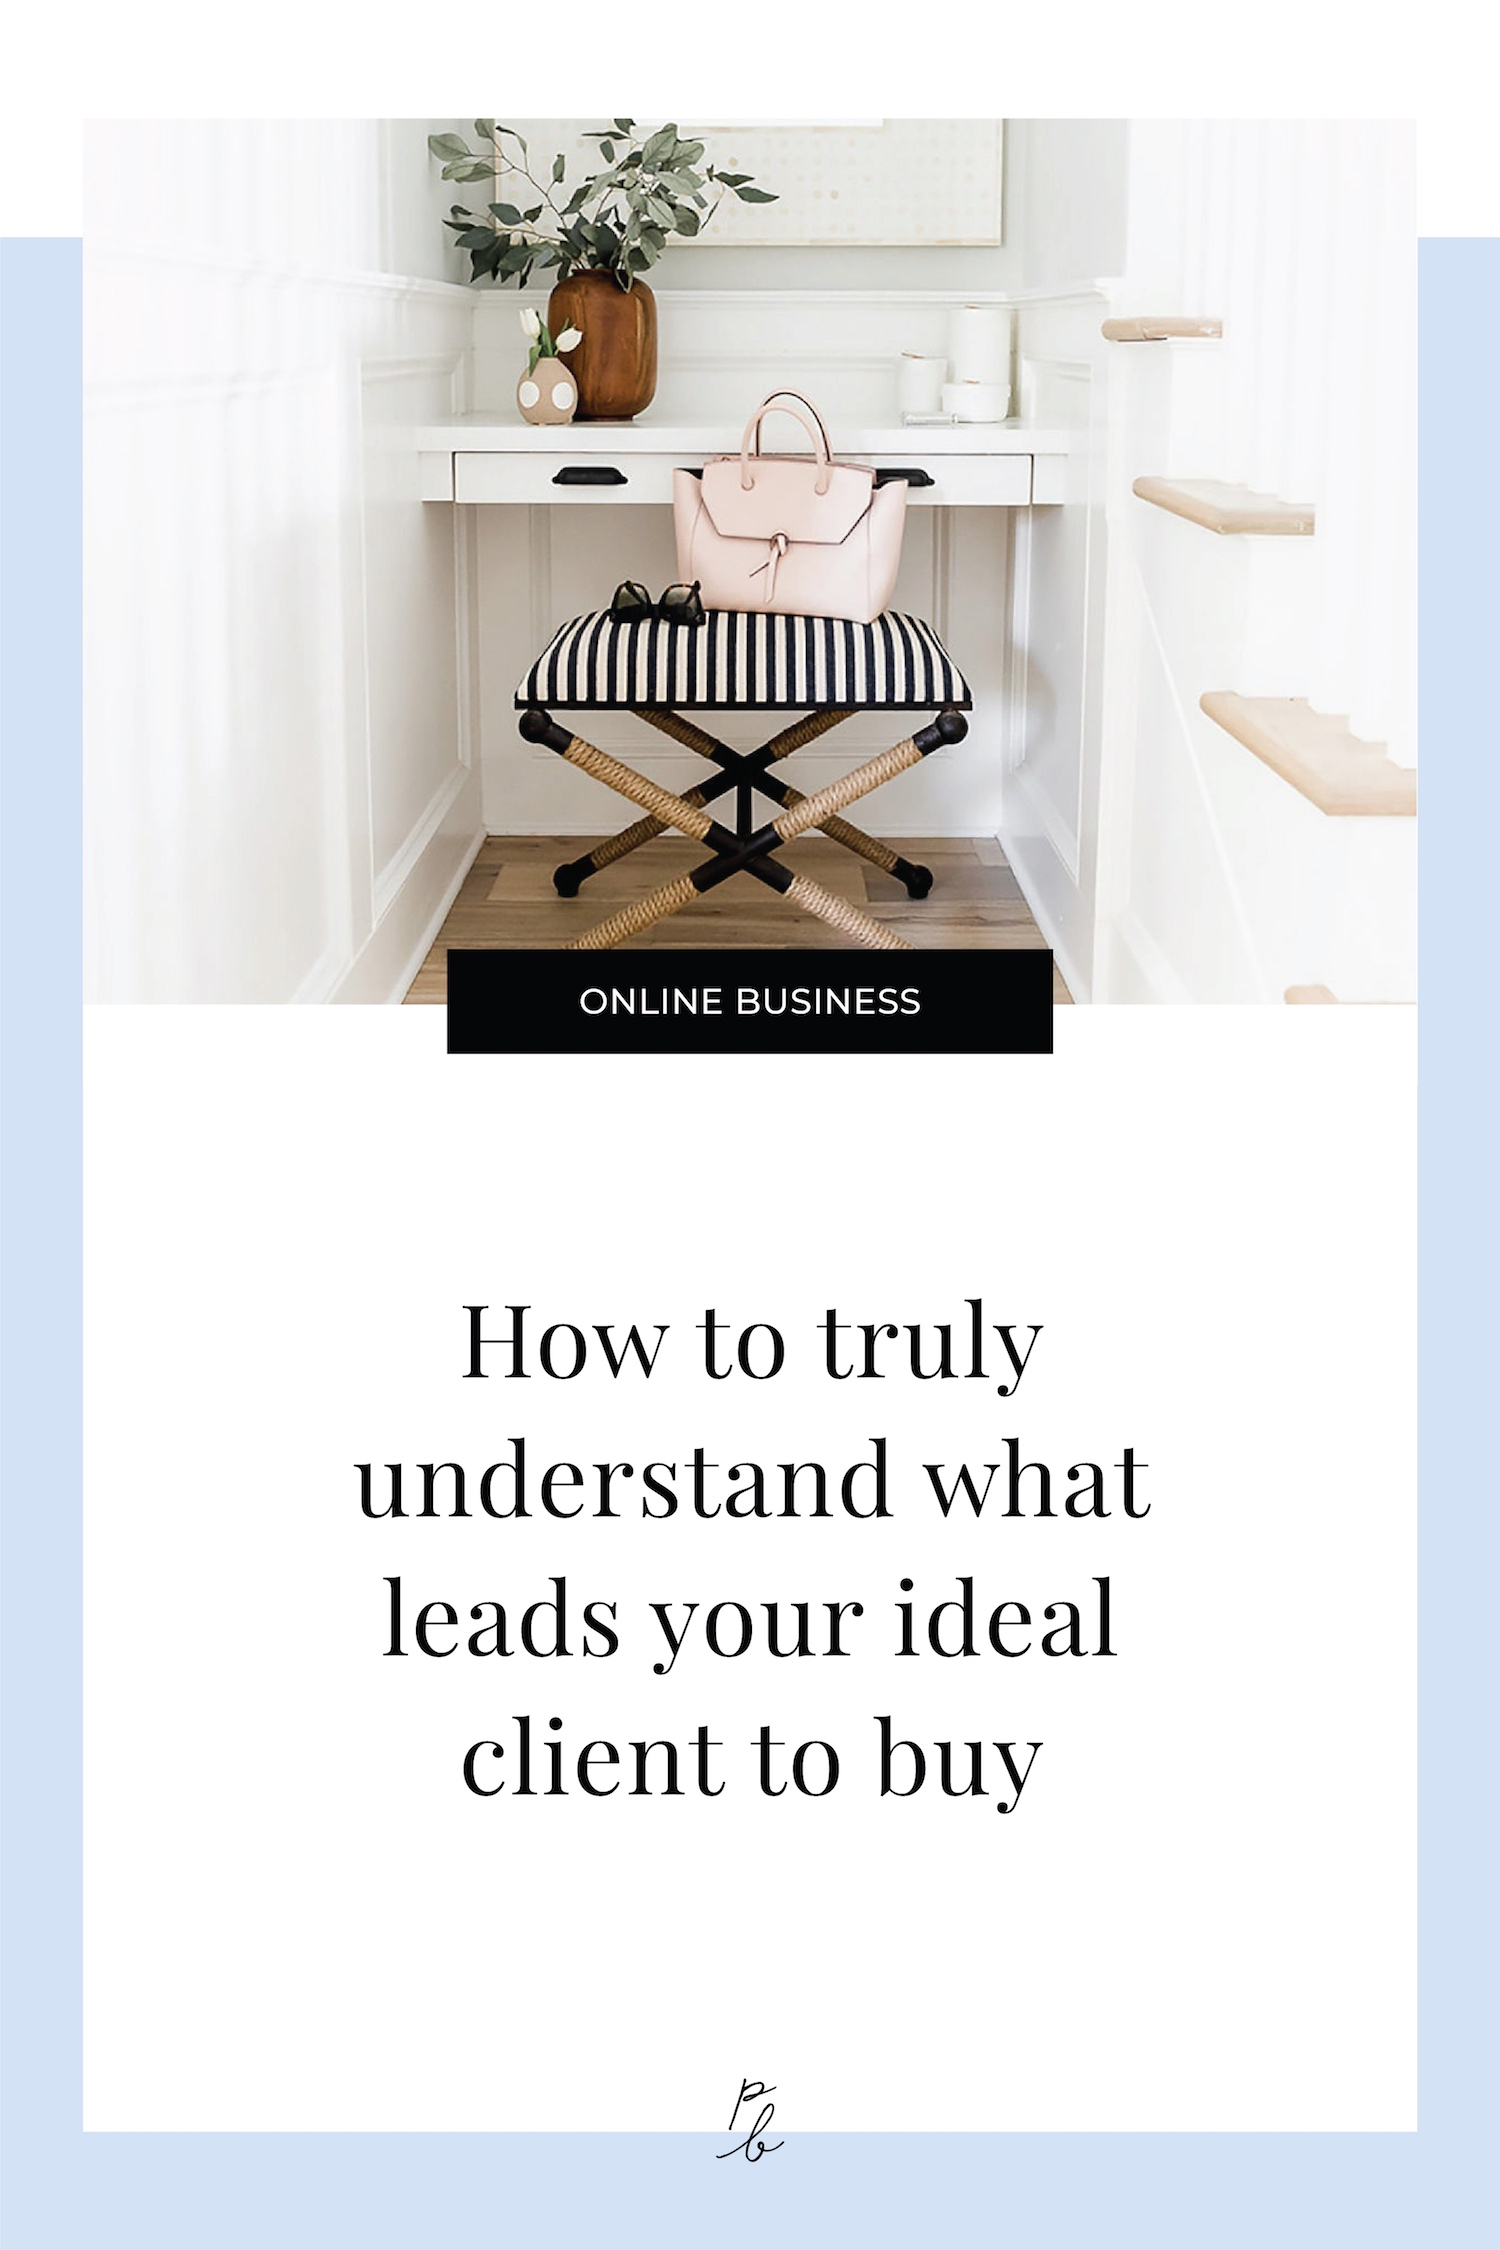 How to truly understand what leads your ideal client to buy-52.jpg